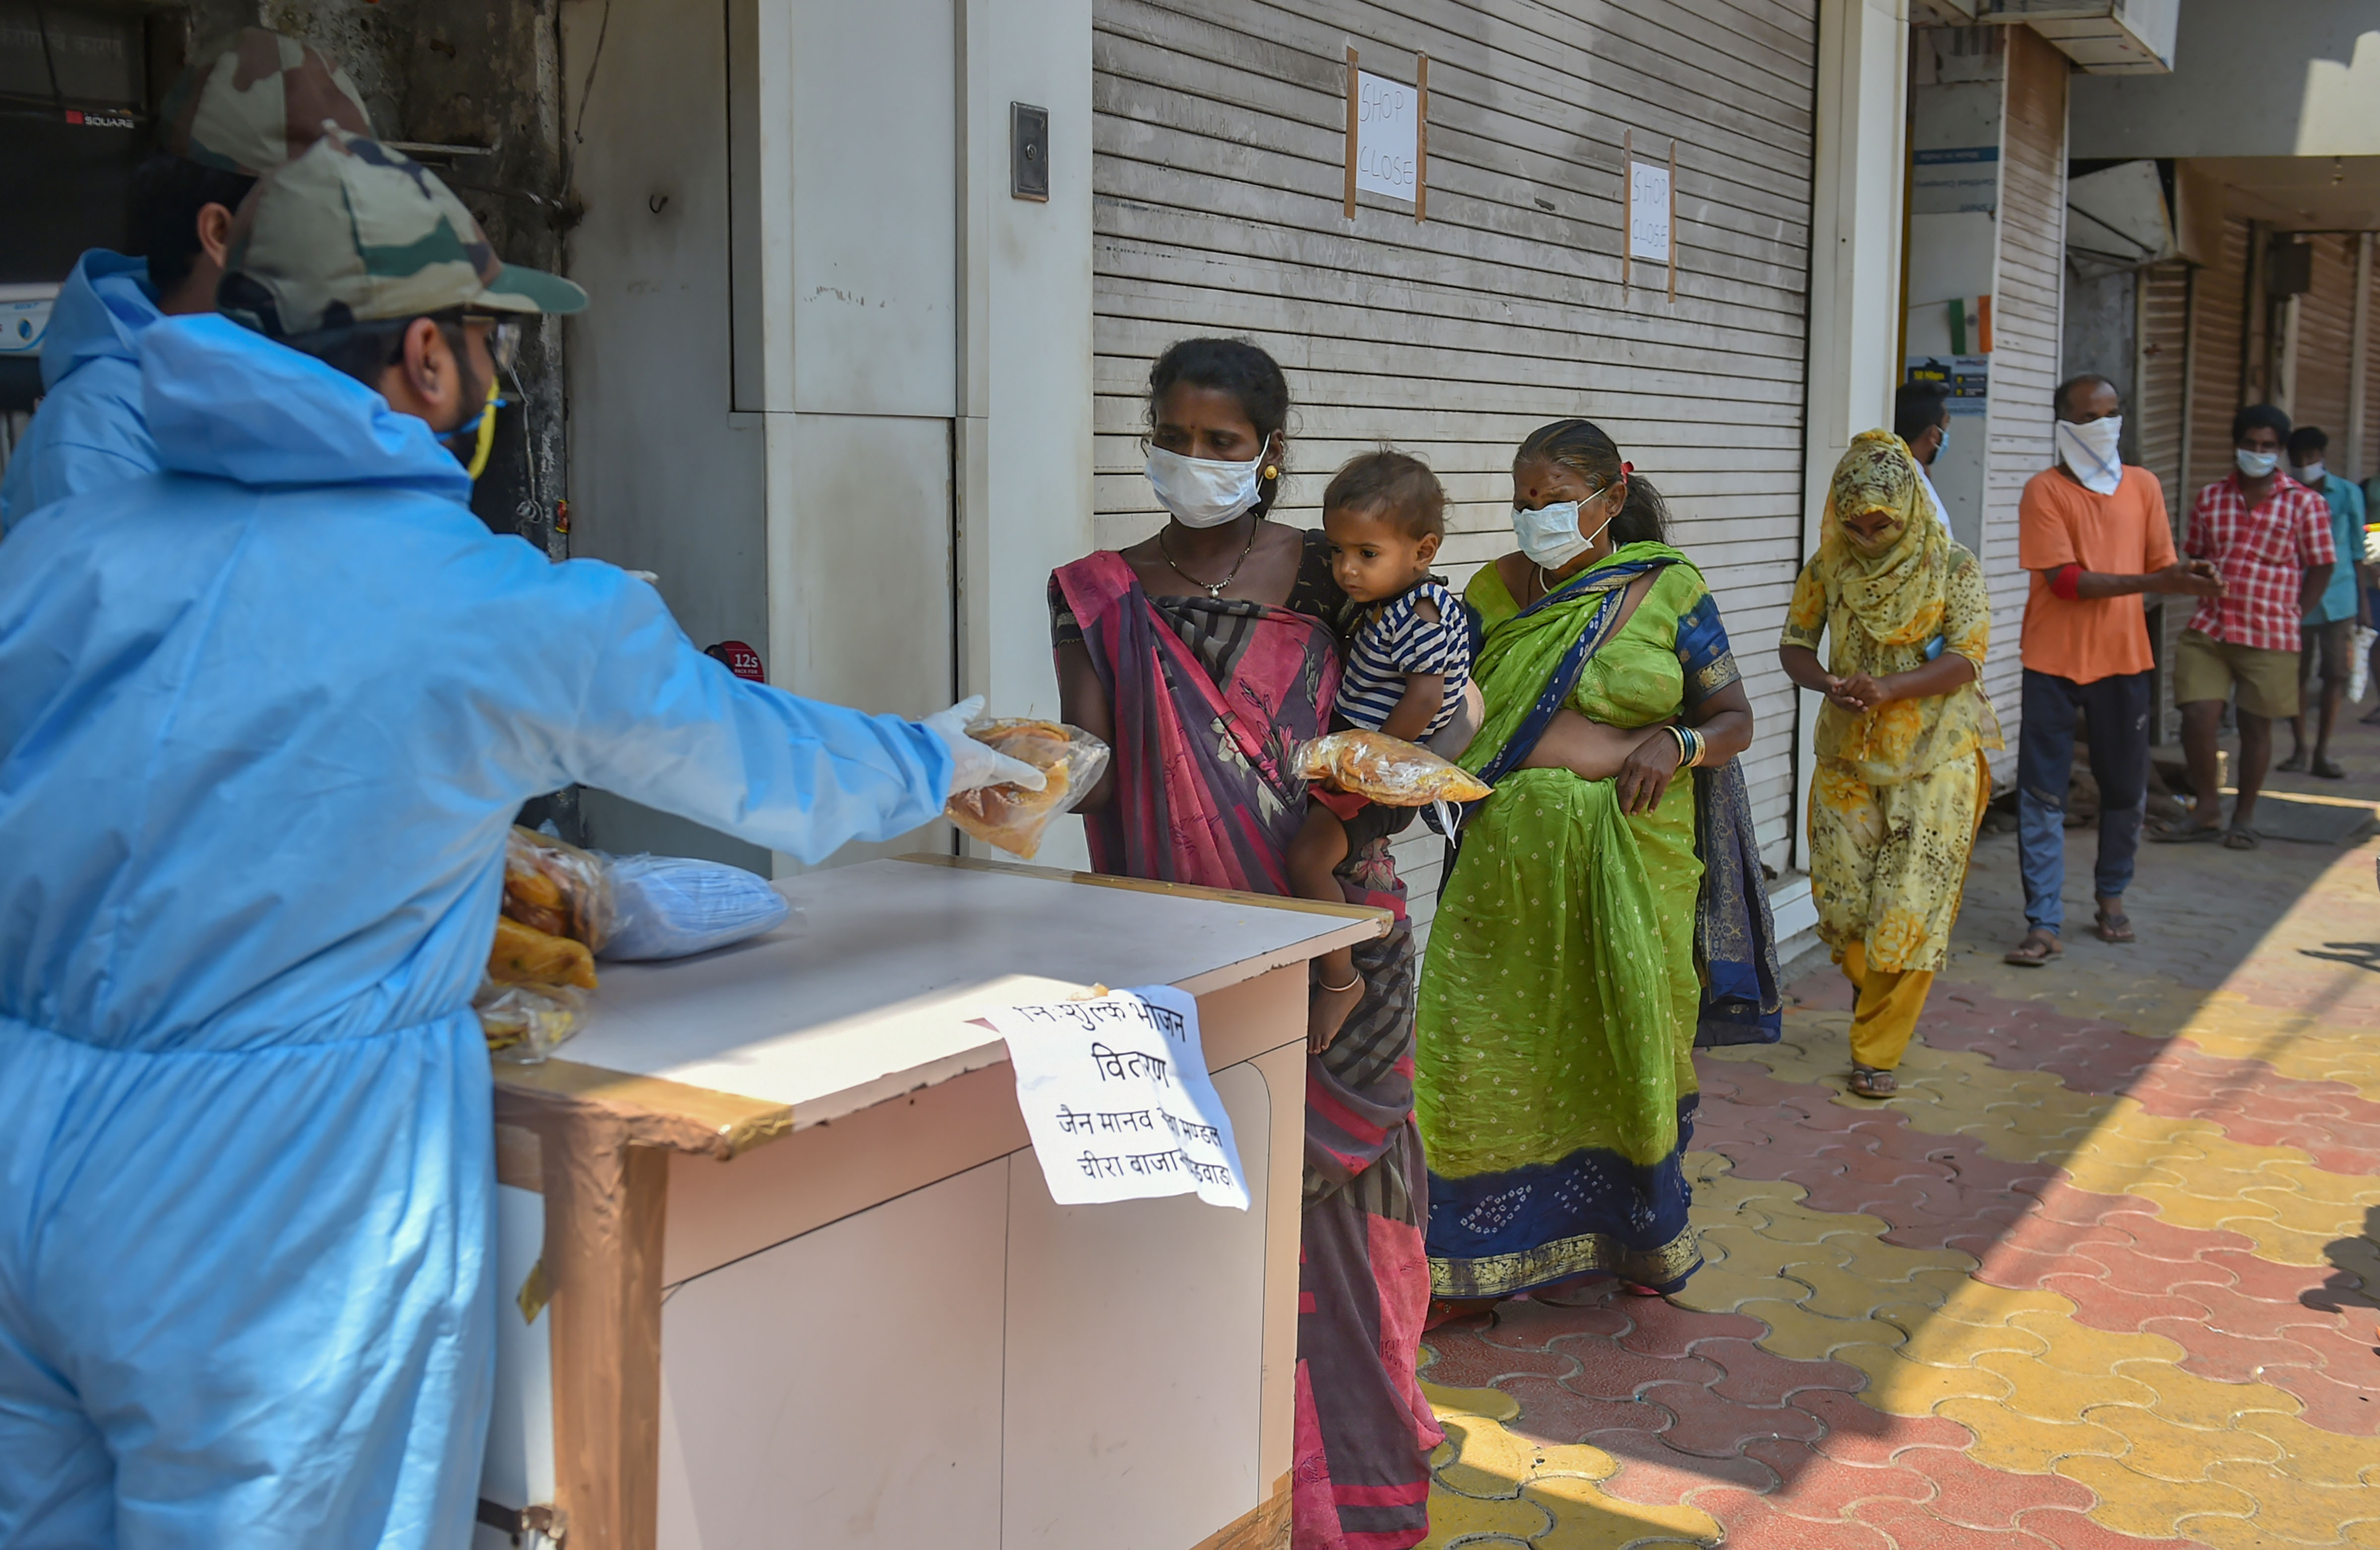 Volunteers distribute packaged food among homeless people during a nationwide lockdown in the wake of the coronavirus pandemic, at Kalbadevi area in Mumbai, Sunday, March 29, 2020